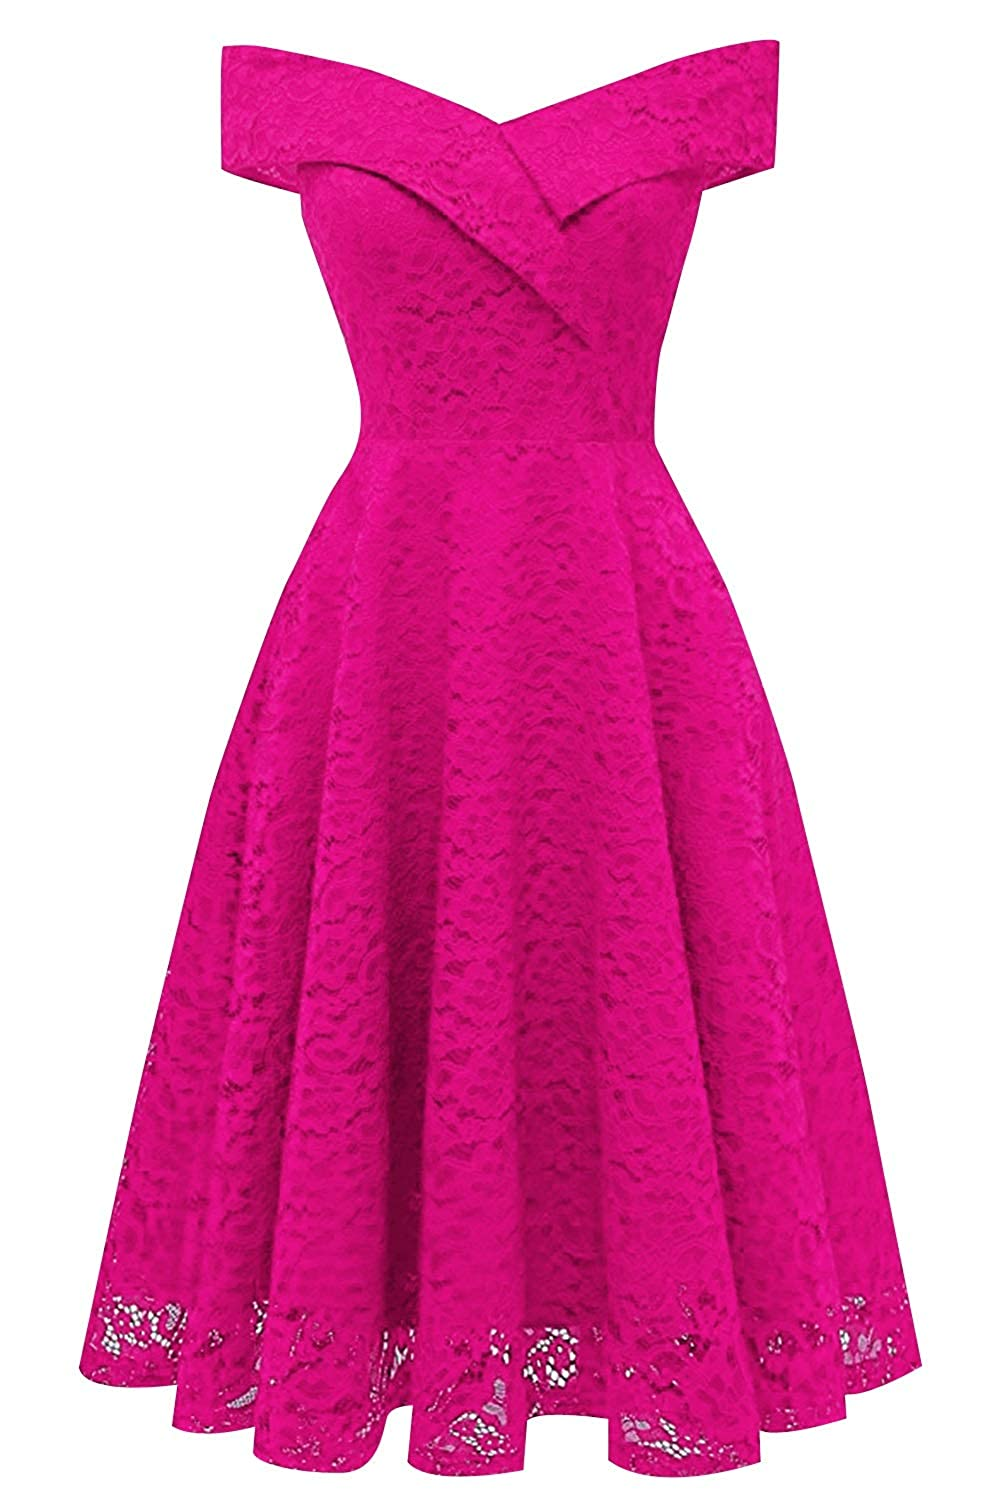 Fuchsia MorySong Women's Lace Off The Shoulder Knee Length Cocktail Homecoming Dress